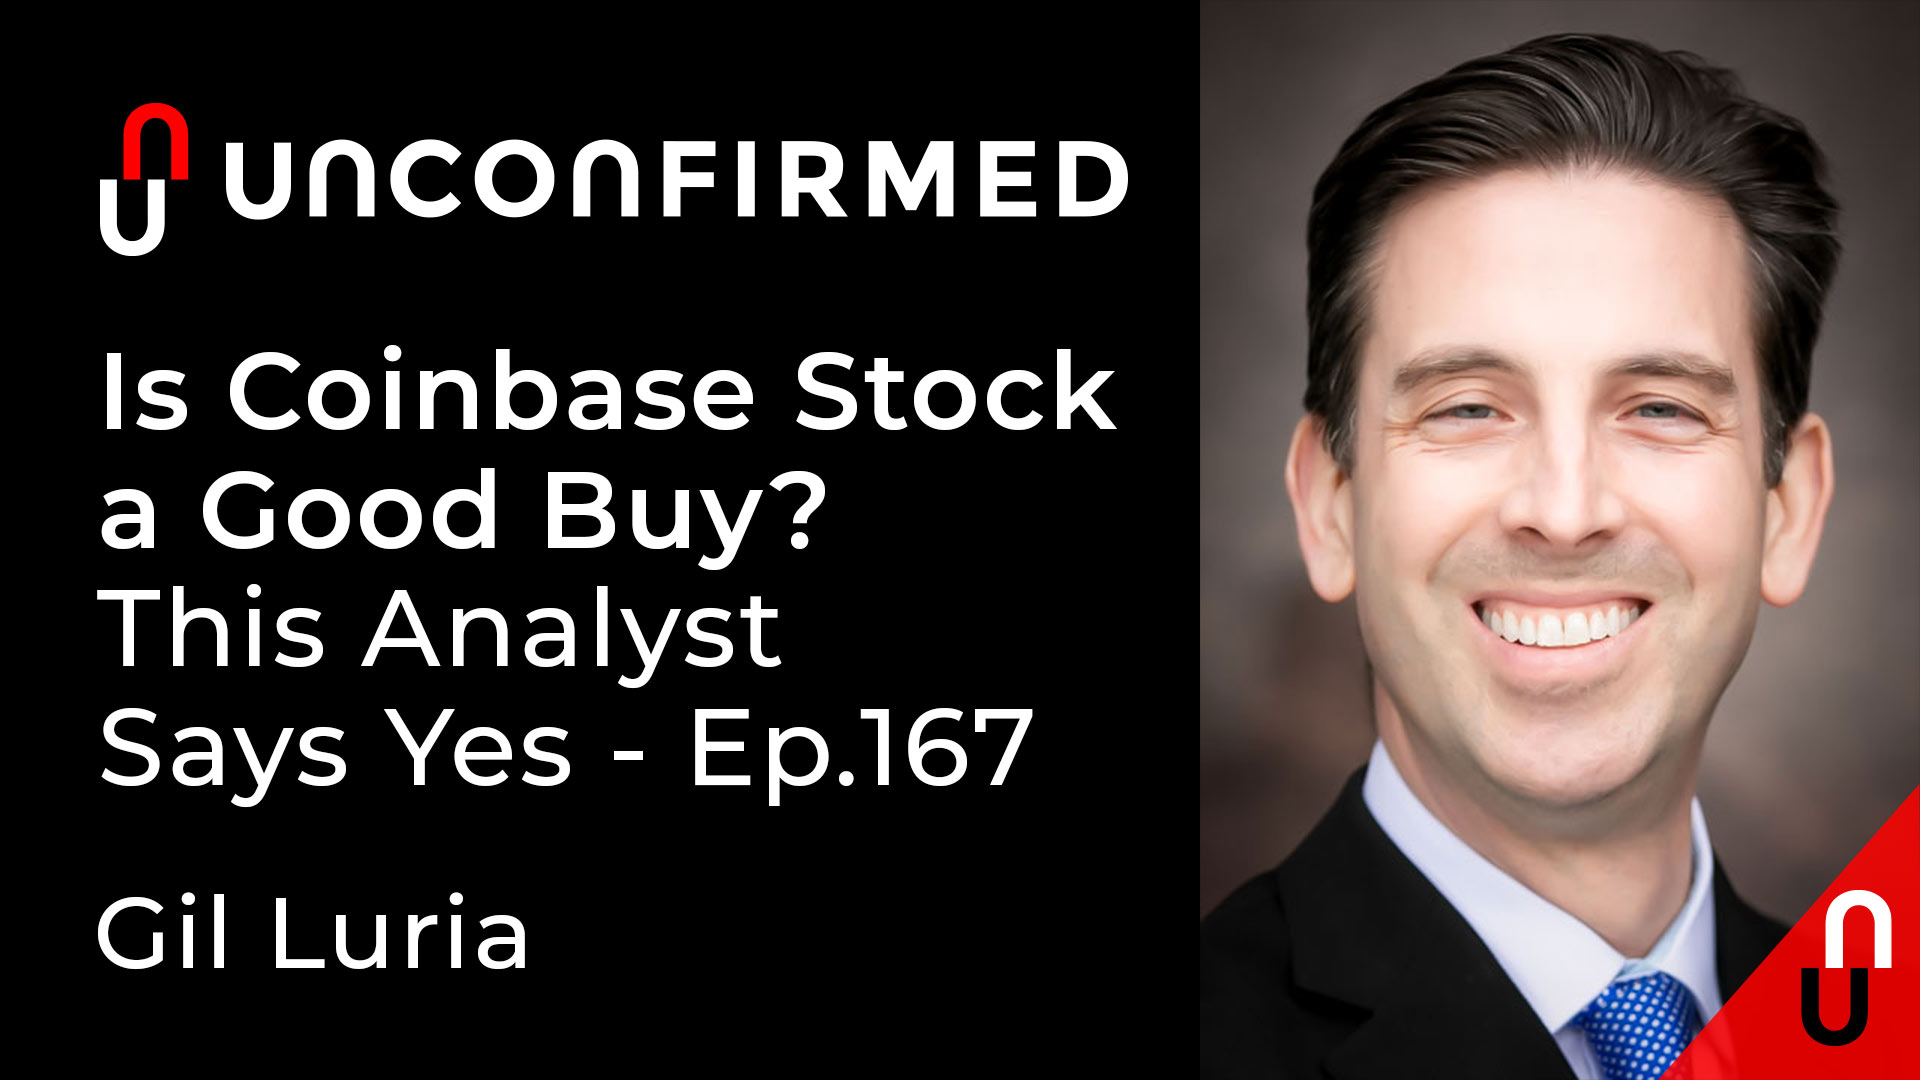 Is Coinbase Stock a Good Buy? This Analyst Says Yes